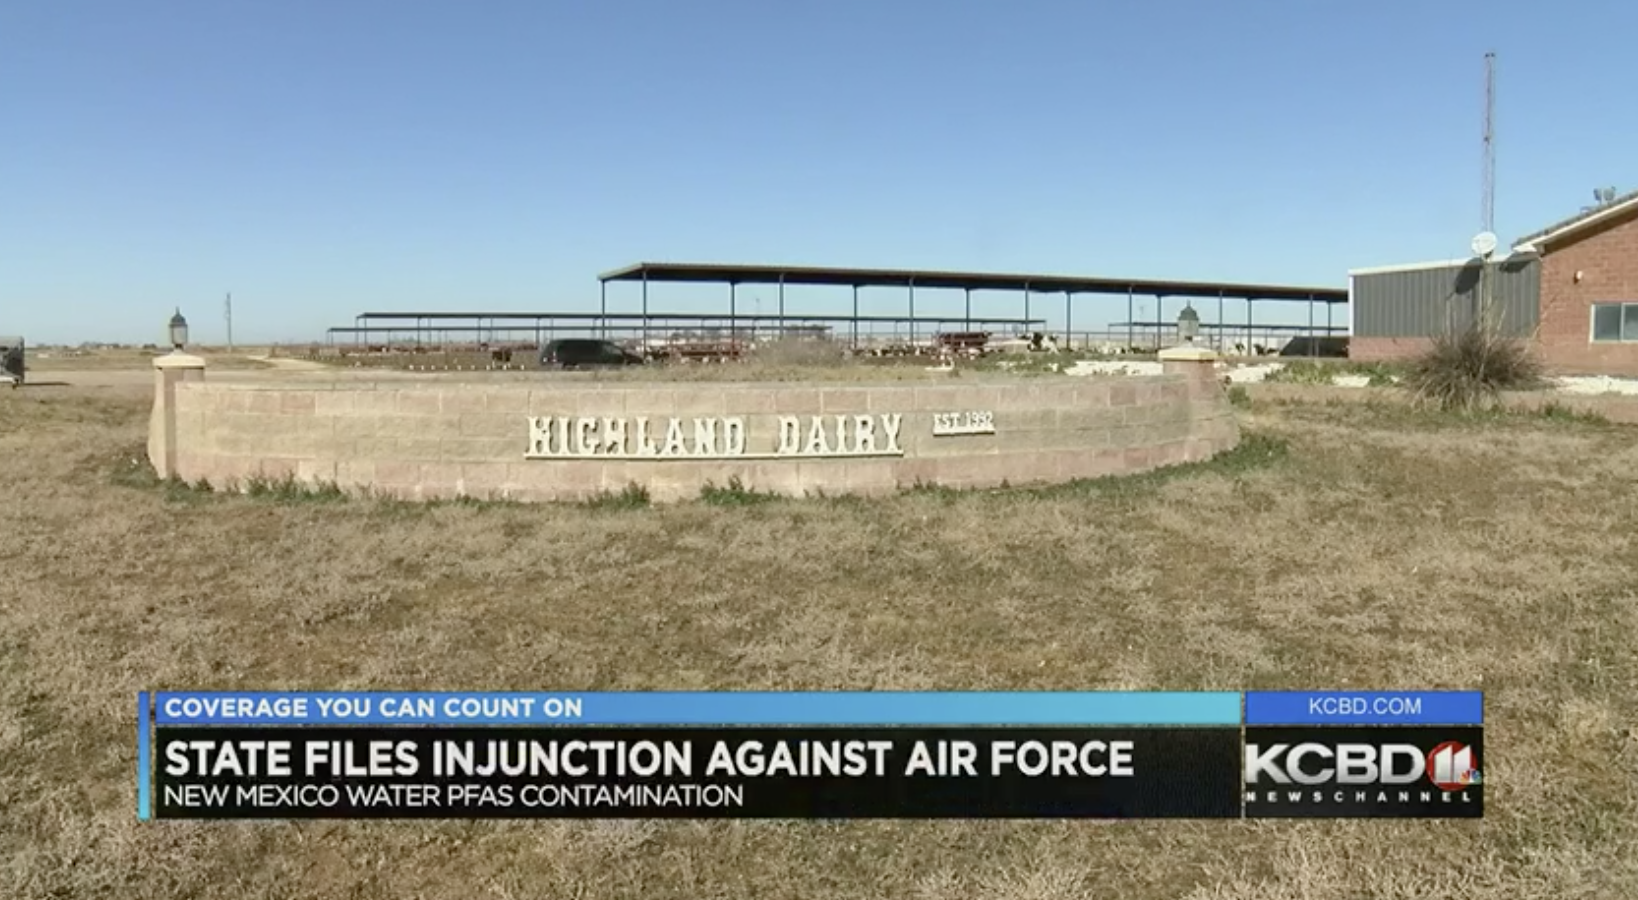 Schapp Family Business Highland Diary suffering from PFAS contamination from Cannon Air Force Base